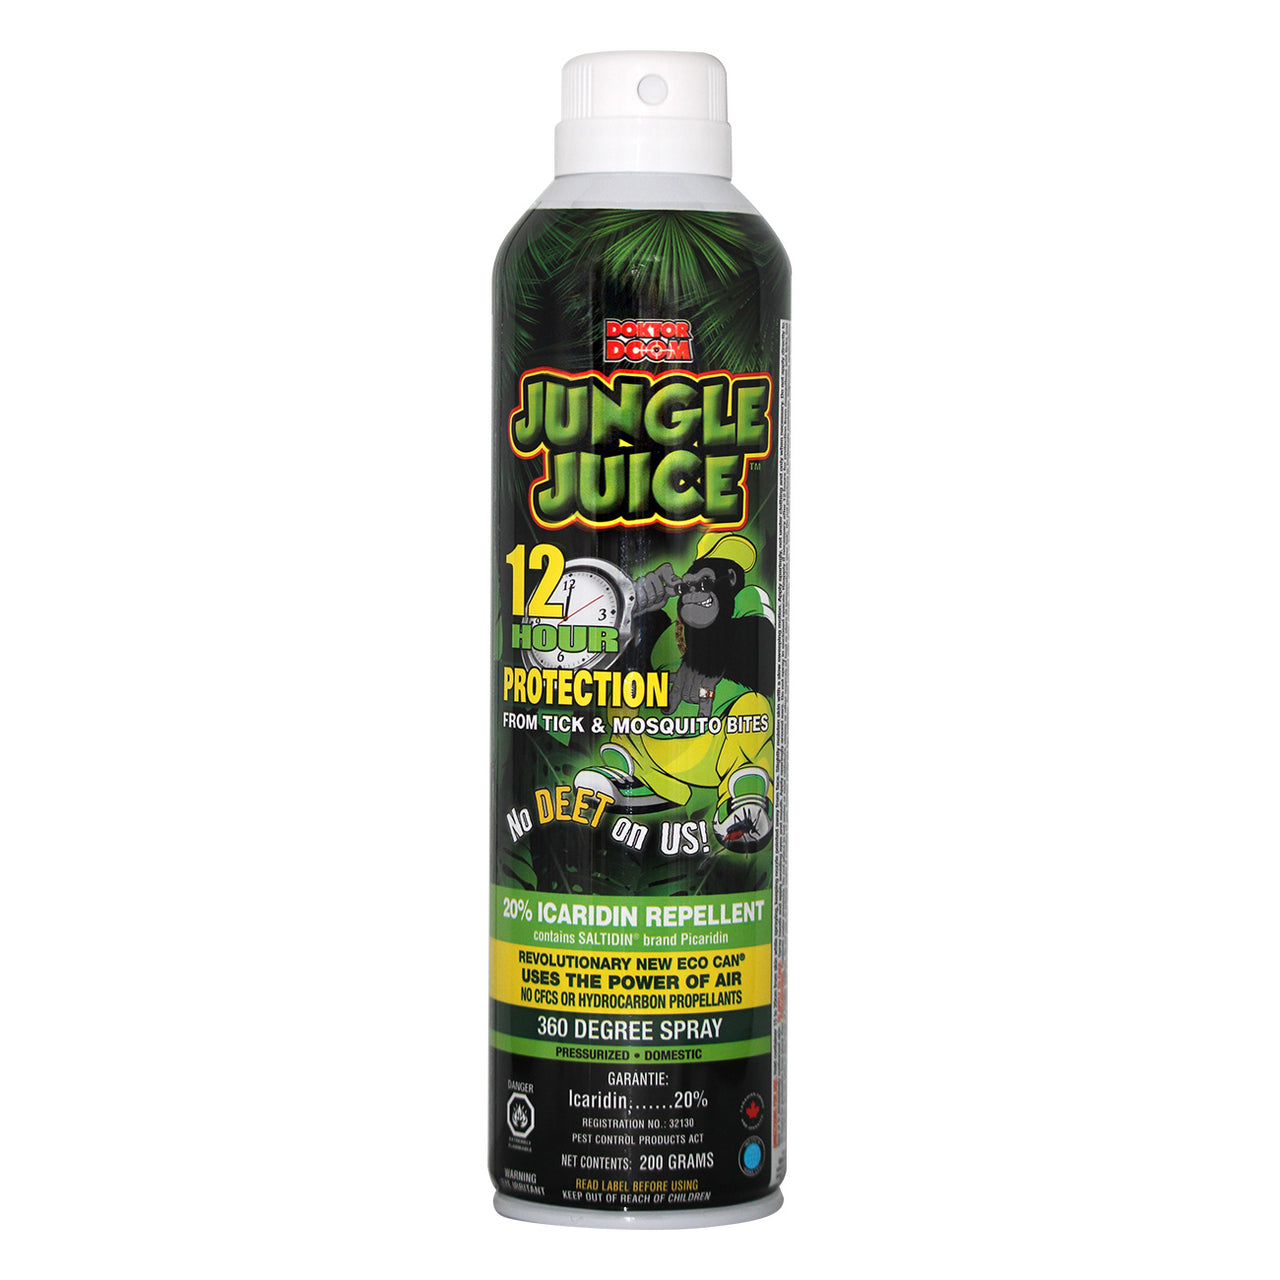 Doktor Doom Jungle Juice 12 Hour Protector 200Gr - Insect Repellant Doktor Doom - Canada